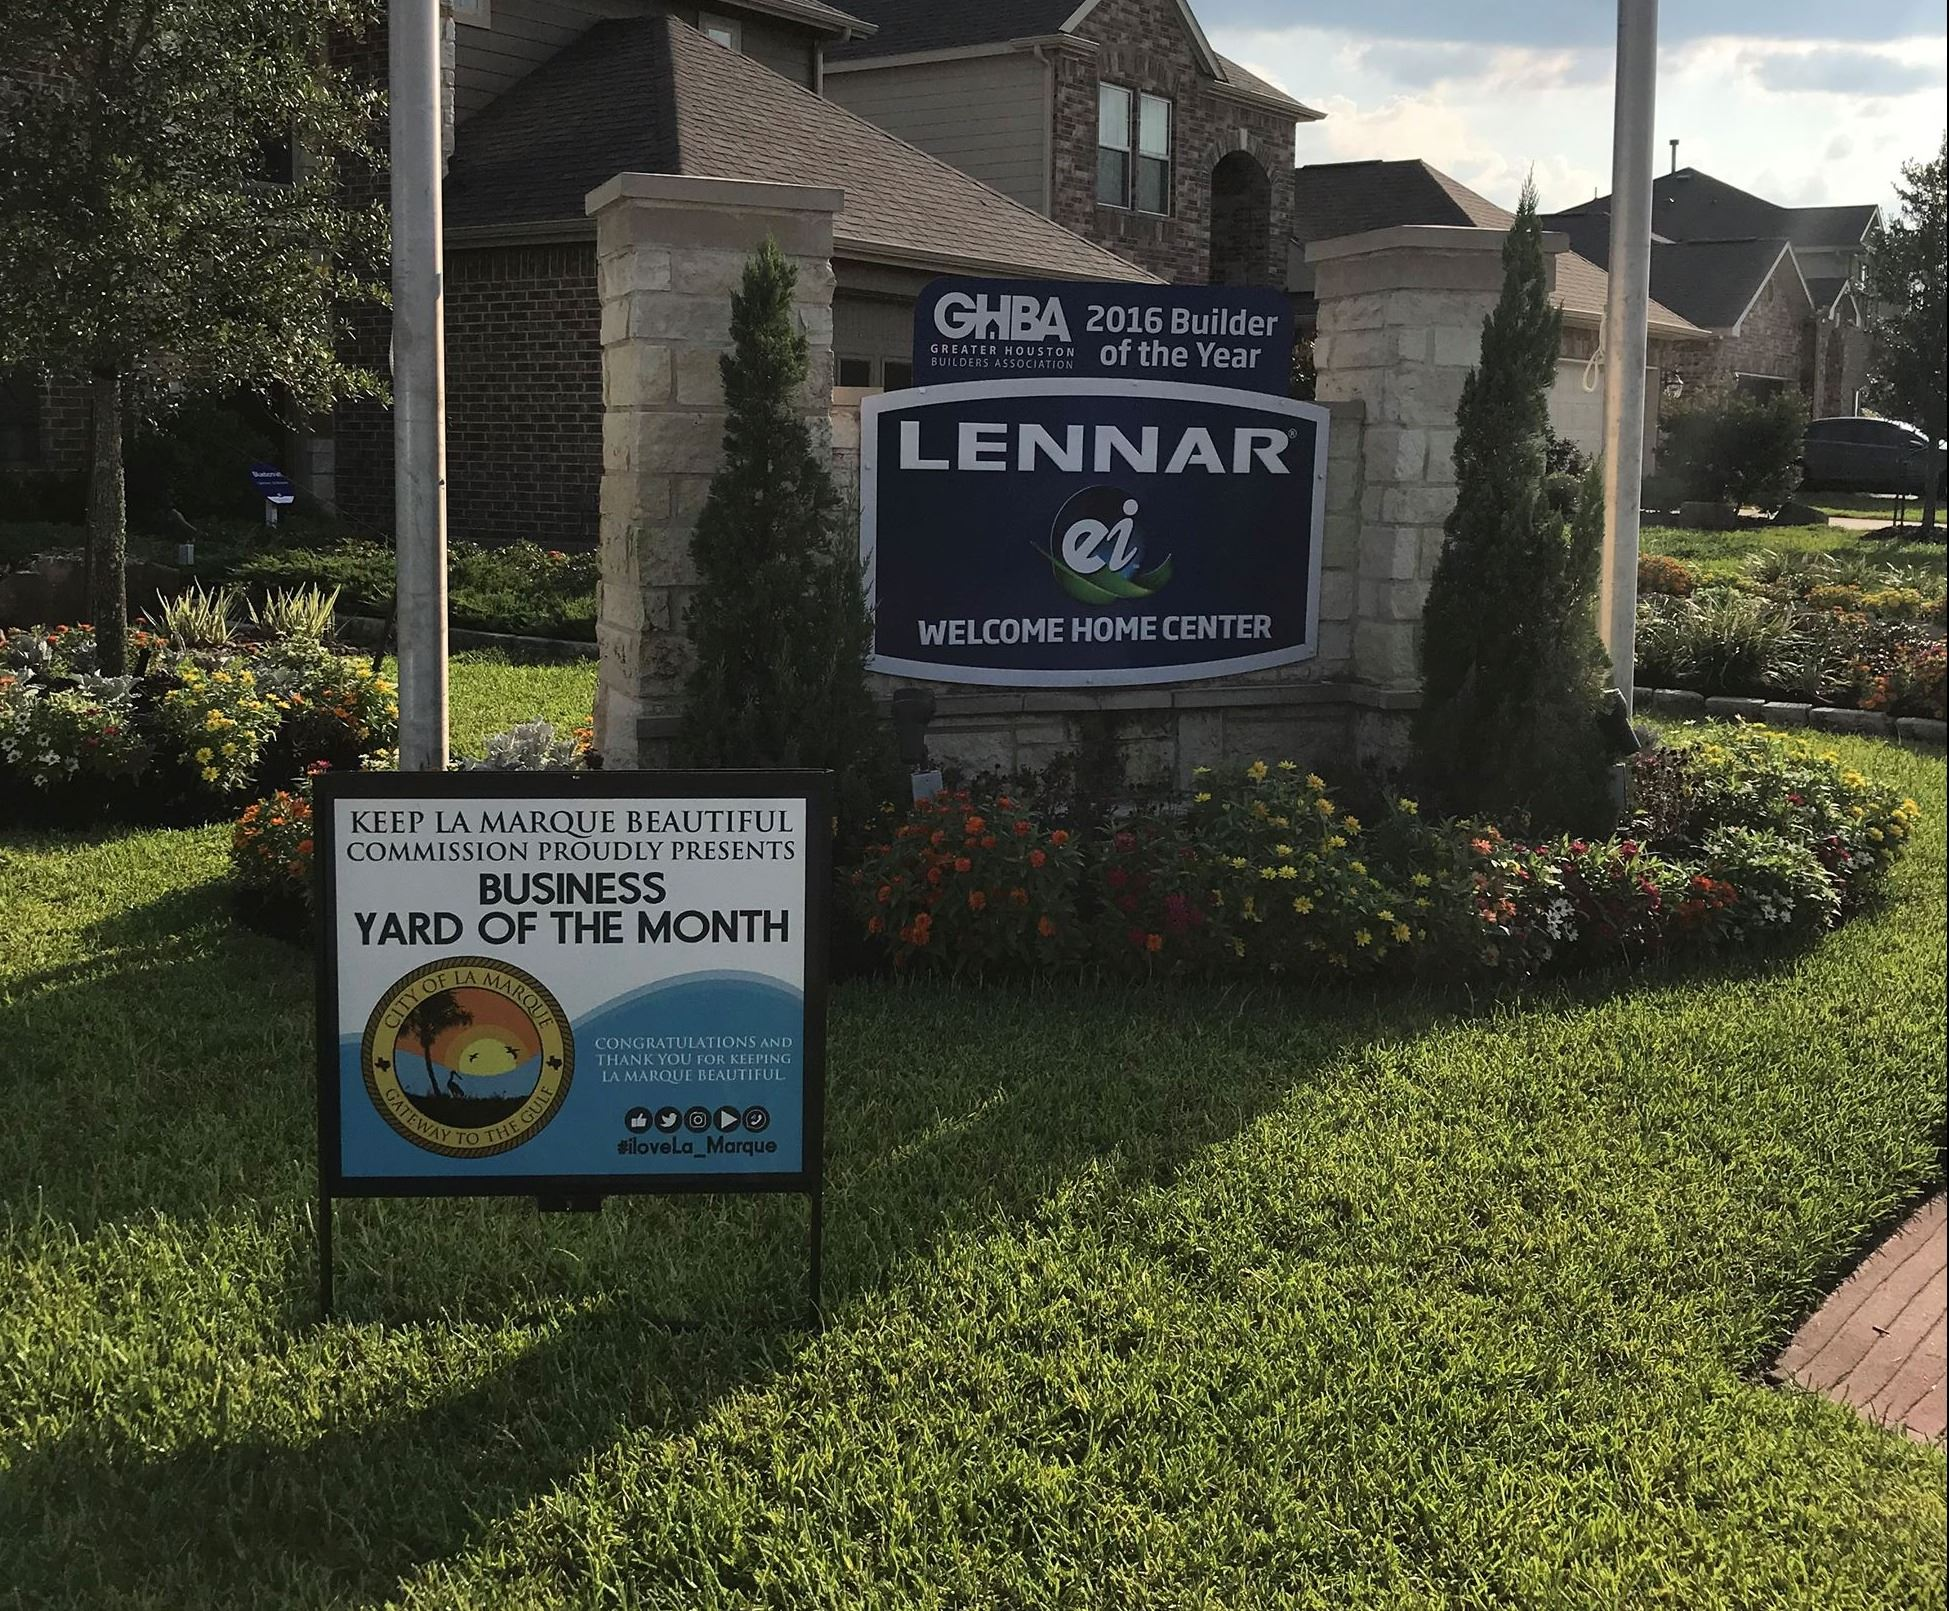 Lennar at Delany Cove